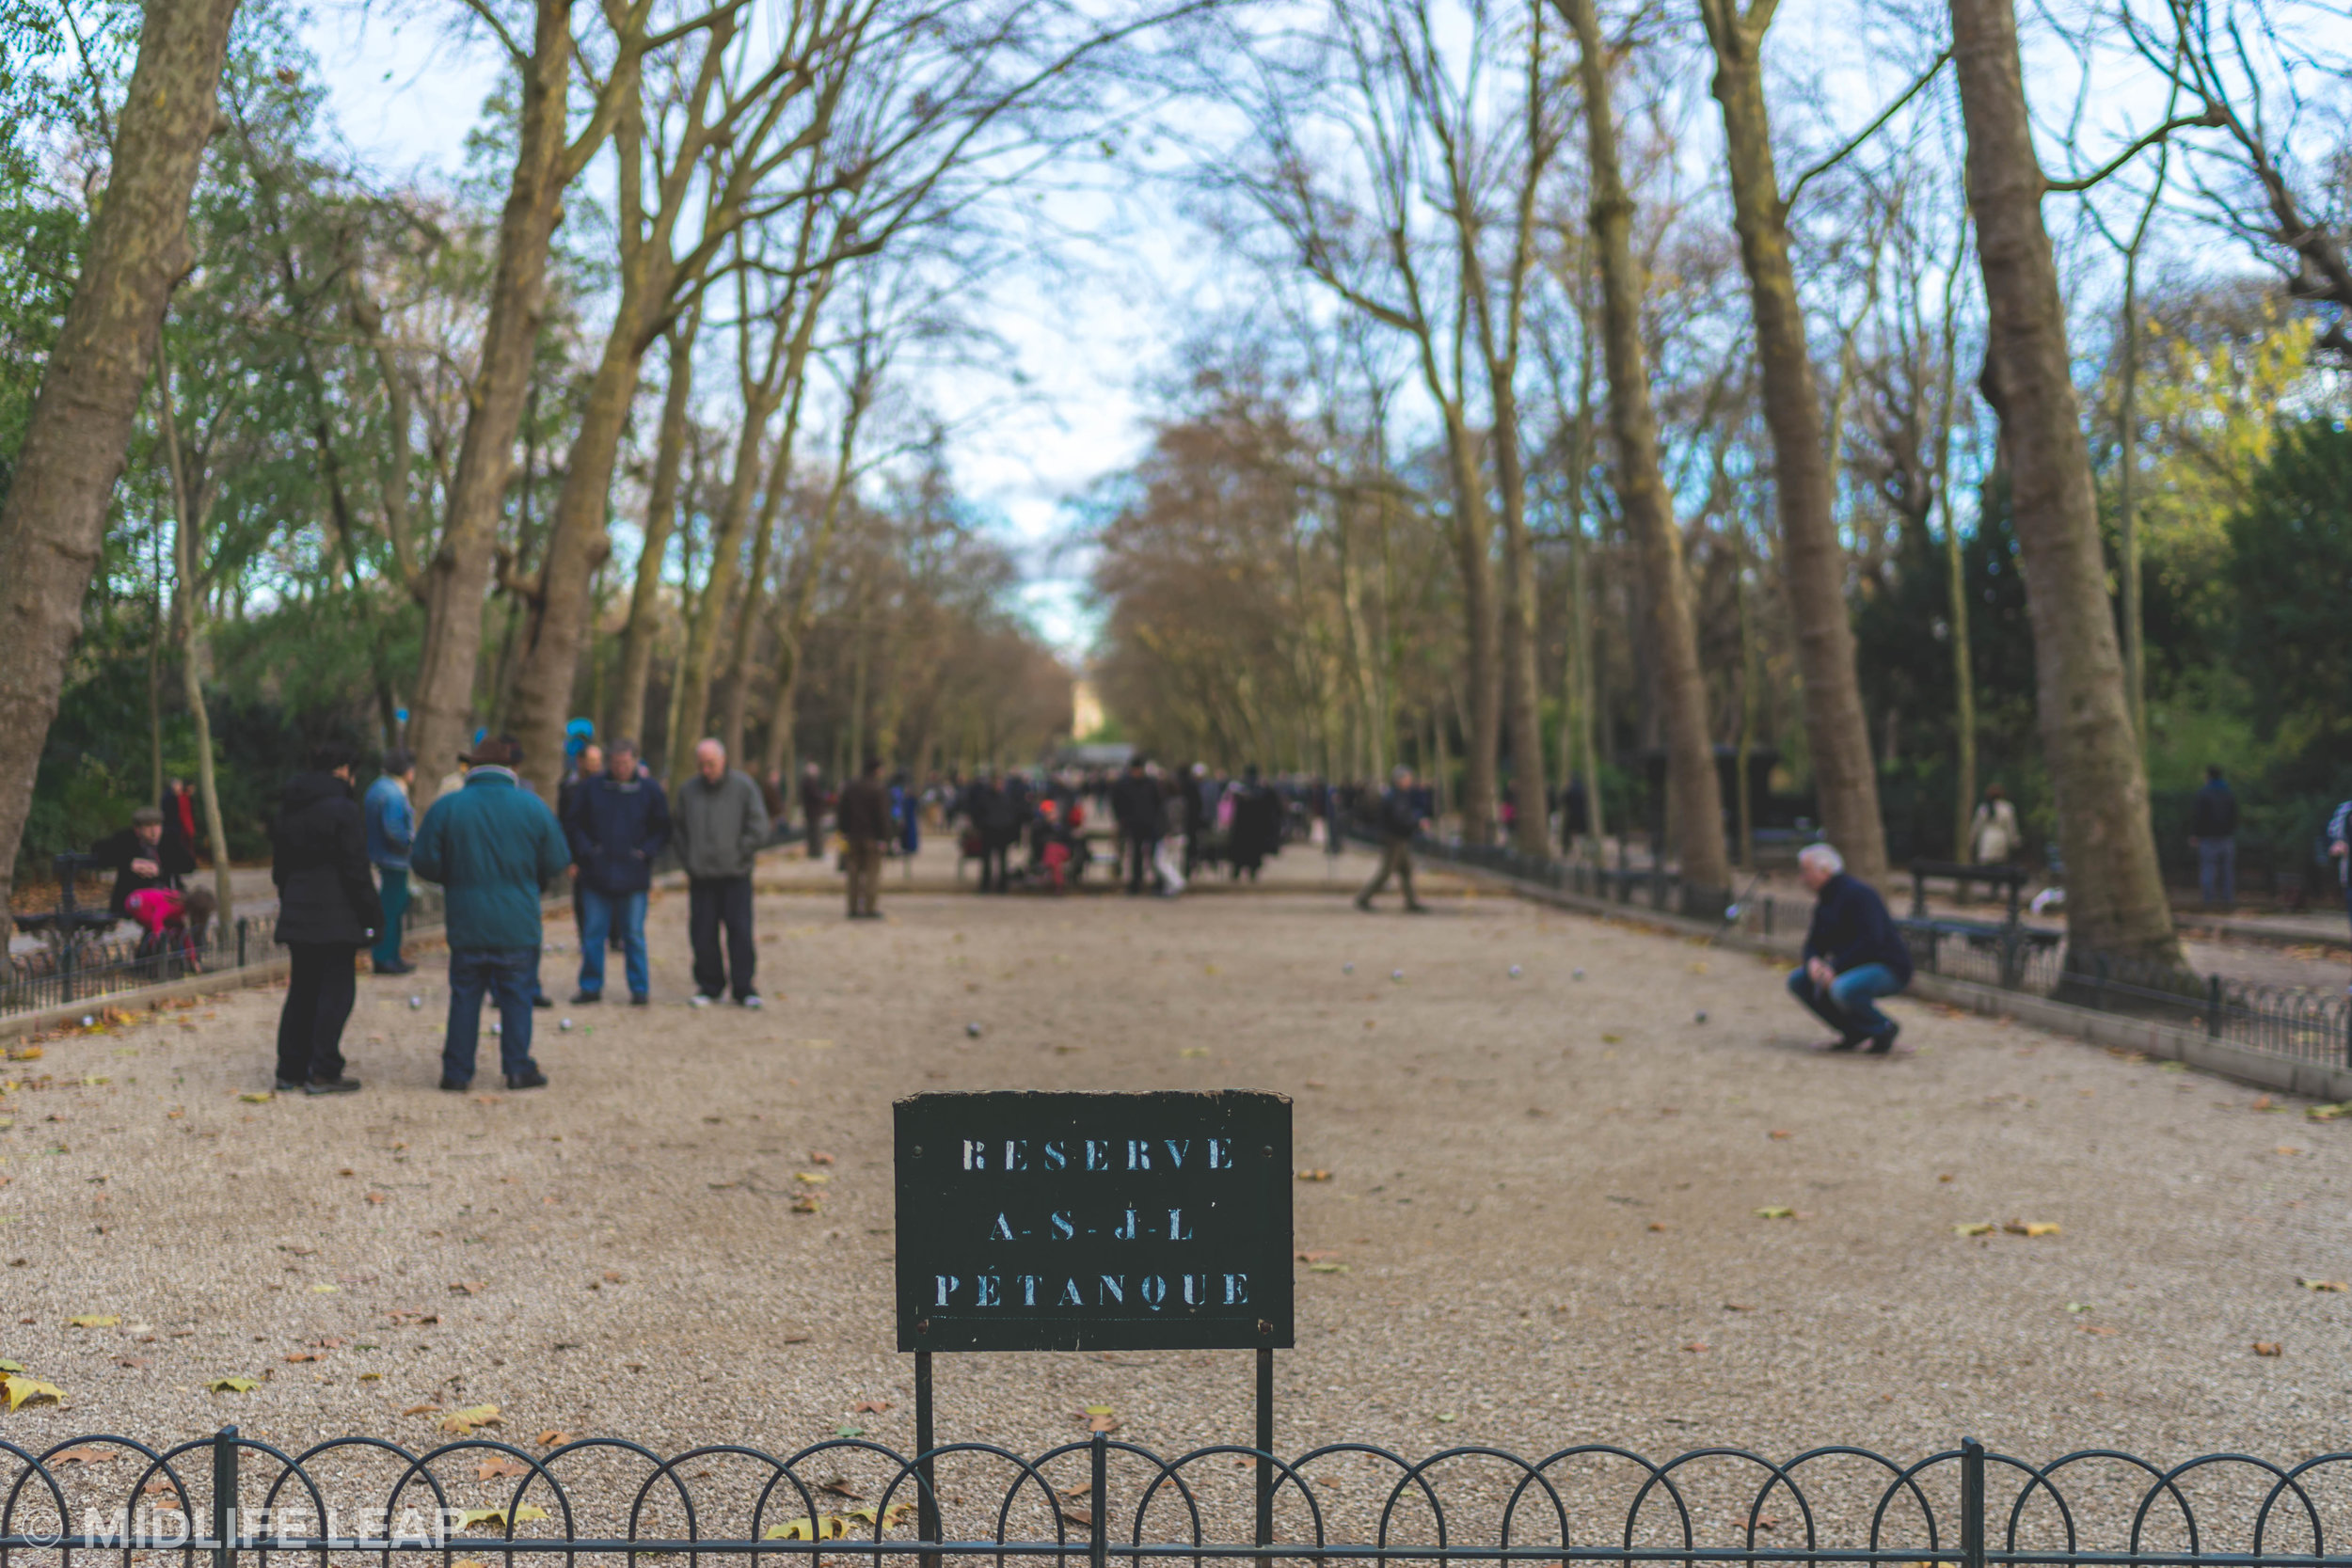 playing-petanque-in-paris-jardin-du-luxembourg